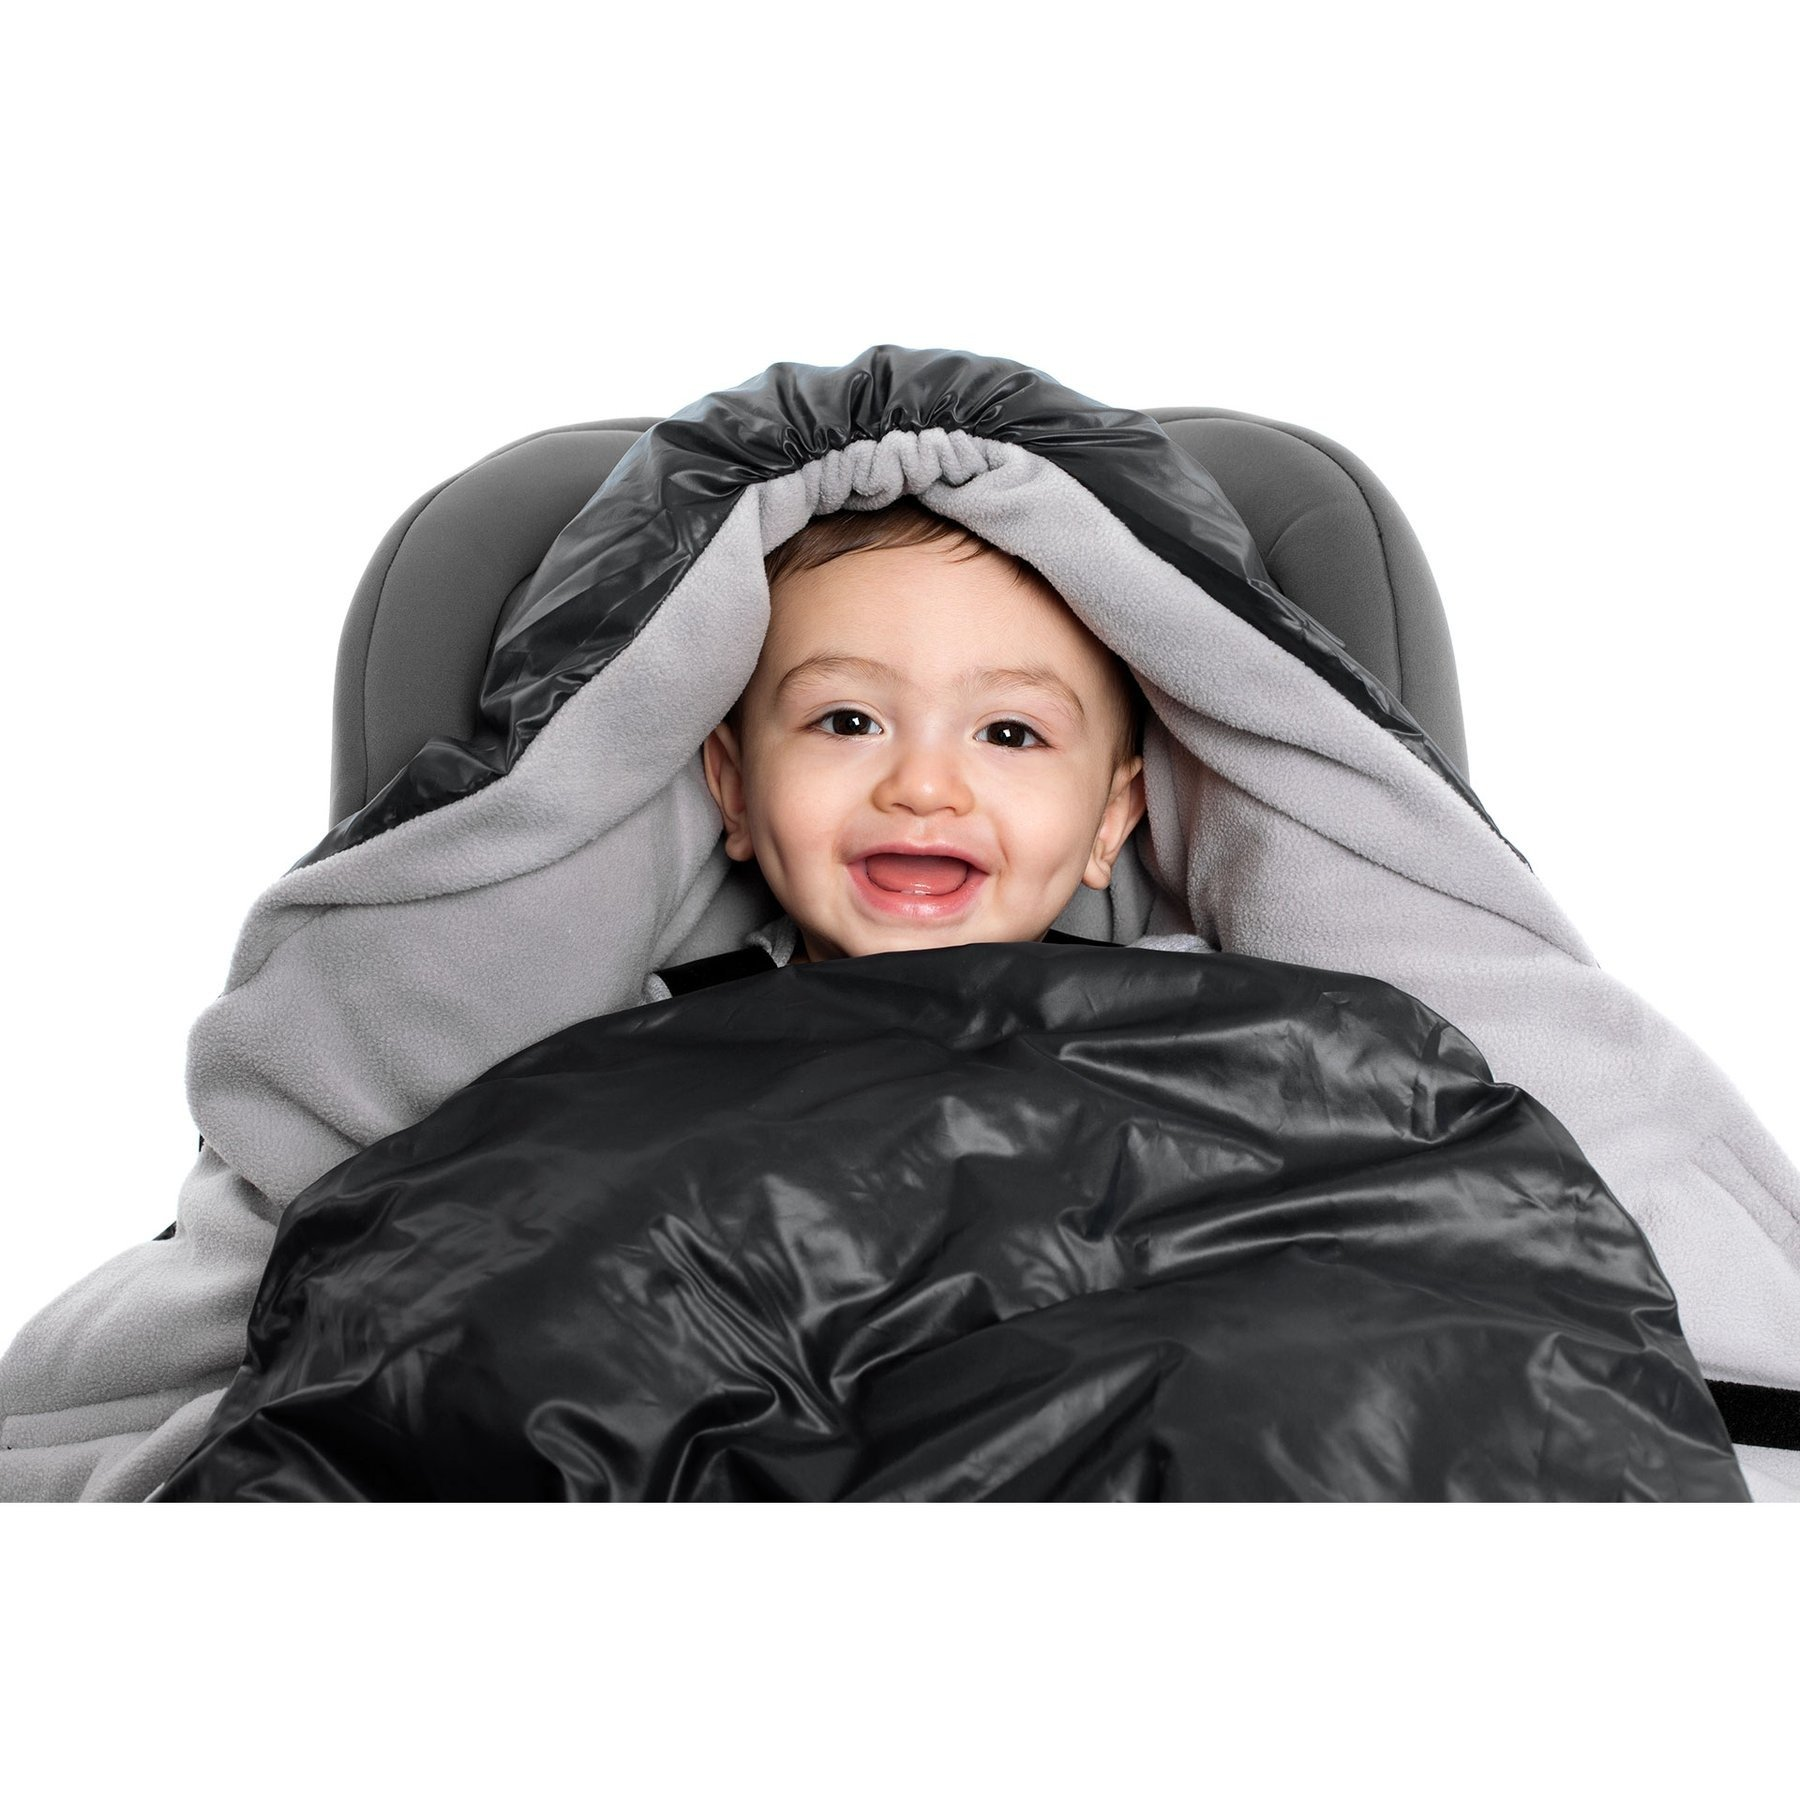 7AM -  Sleeping bag for car seat and strollers NIDO Black L